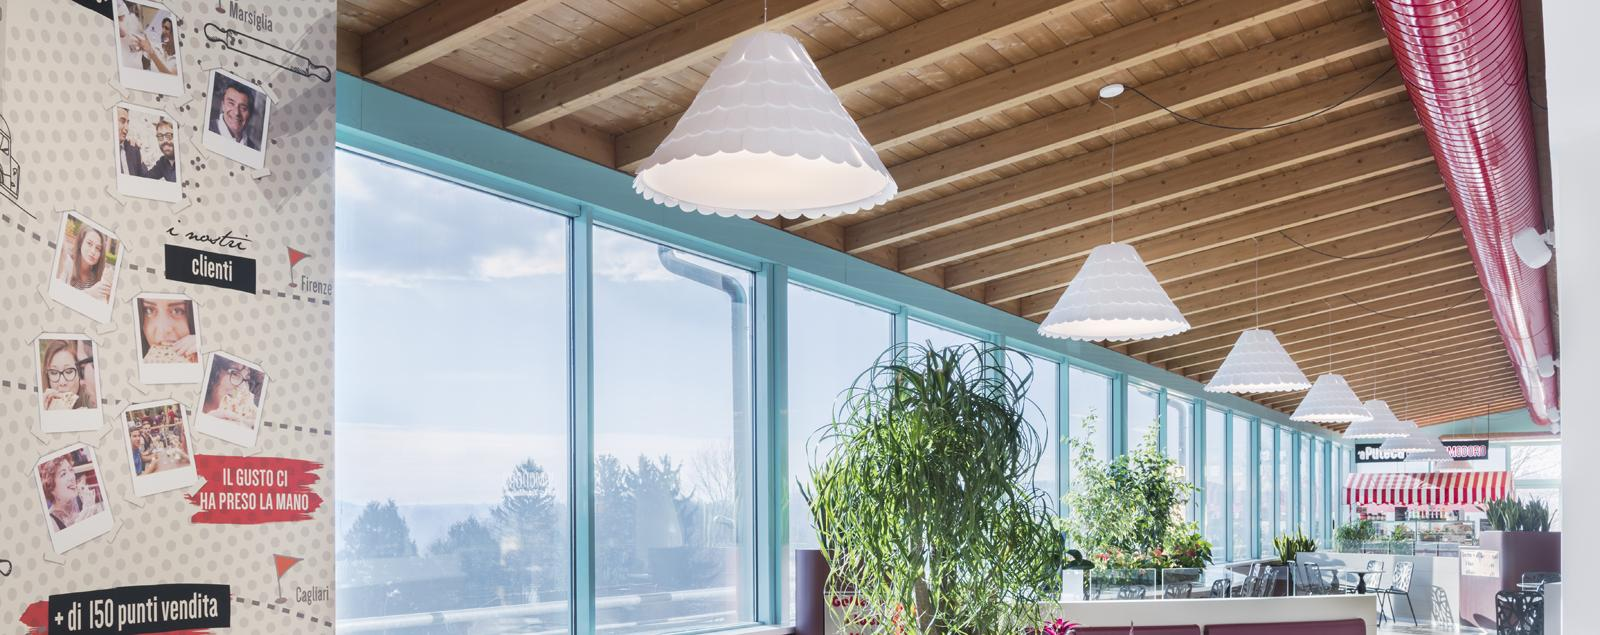 Lighting Project: Offices Bars Restaurants Exhibitions Hotels ...